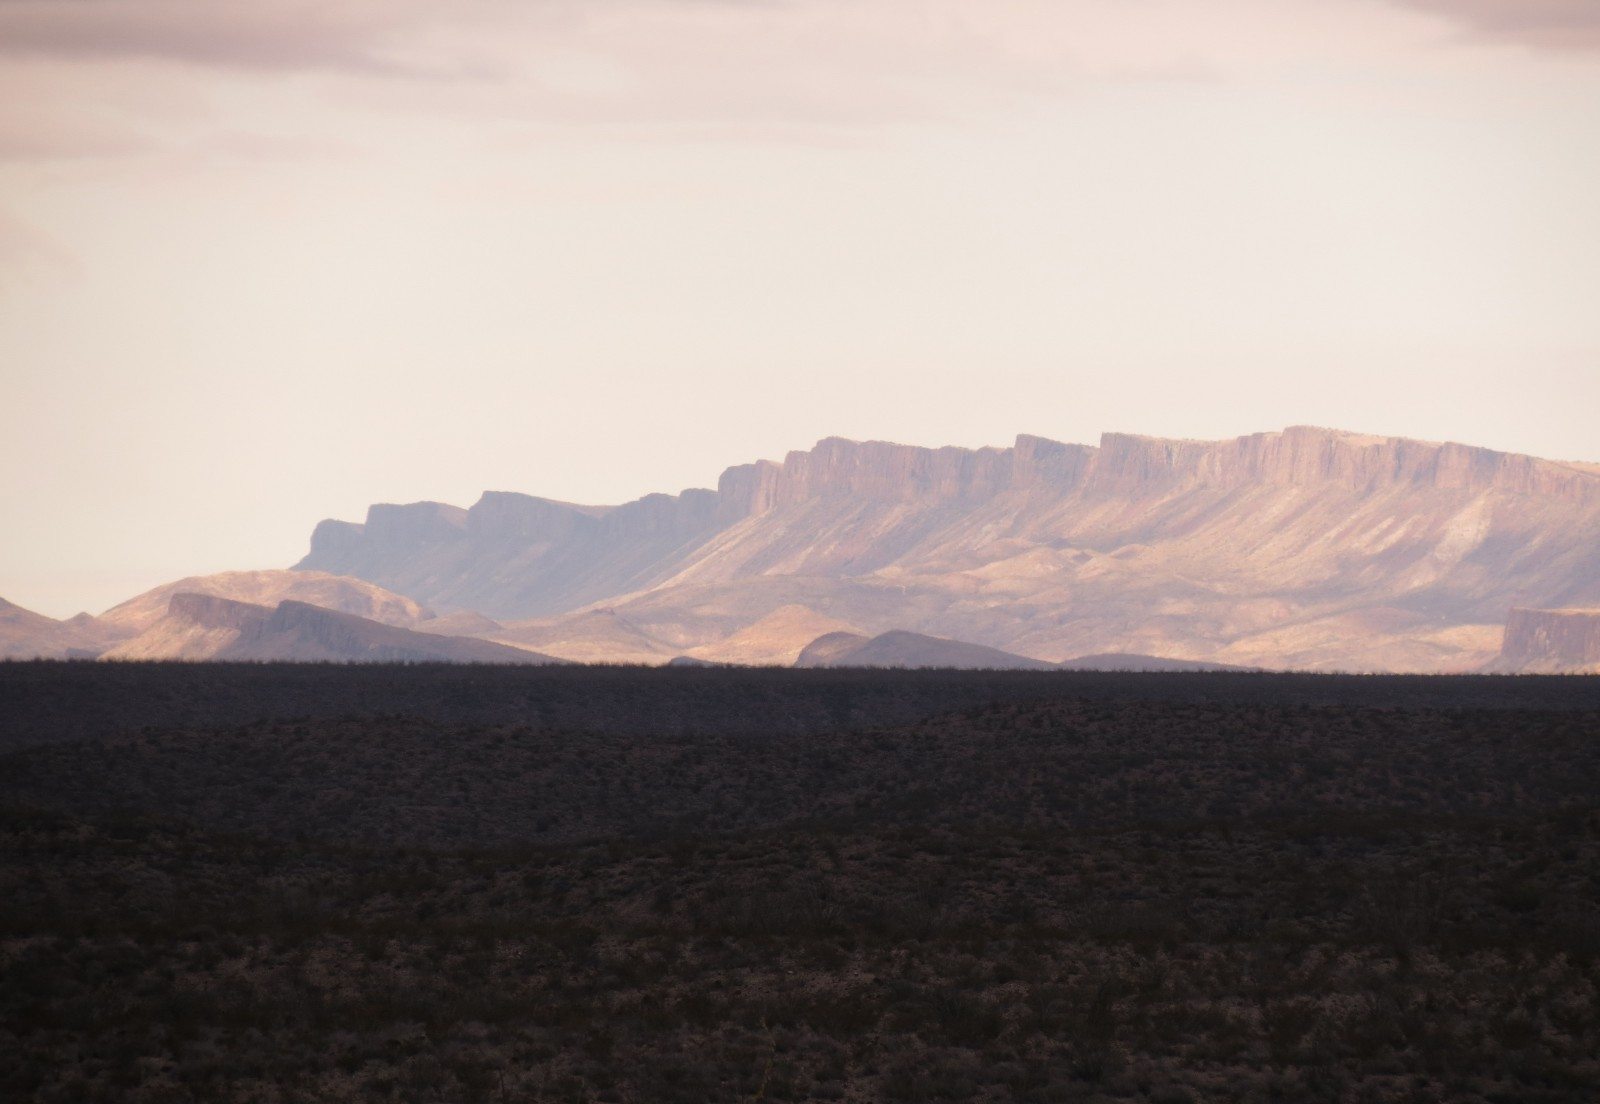 A Big Bend sunset captured by David W. Keller